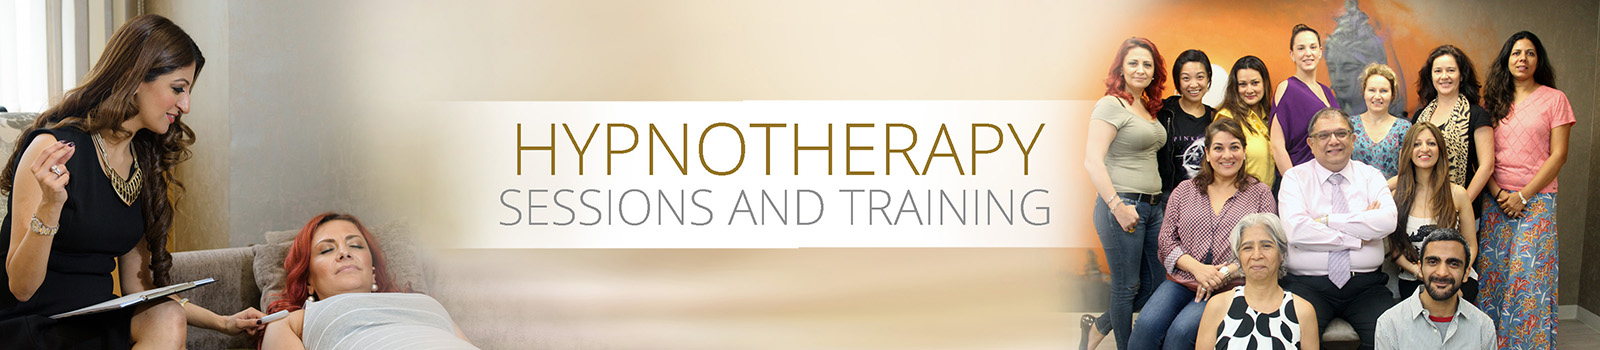 Hypnotherapy Sessions and Training